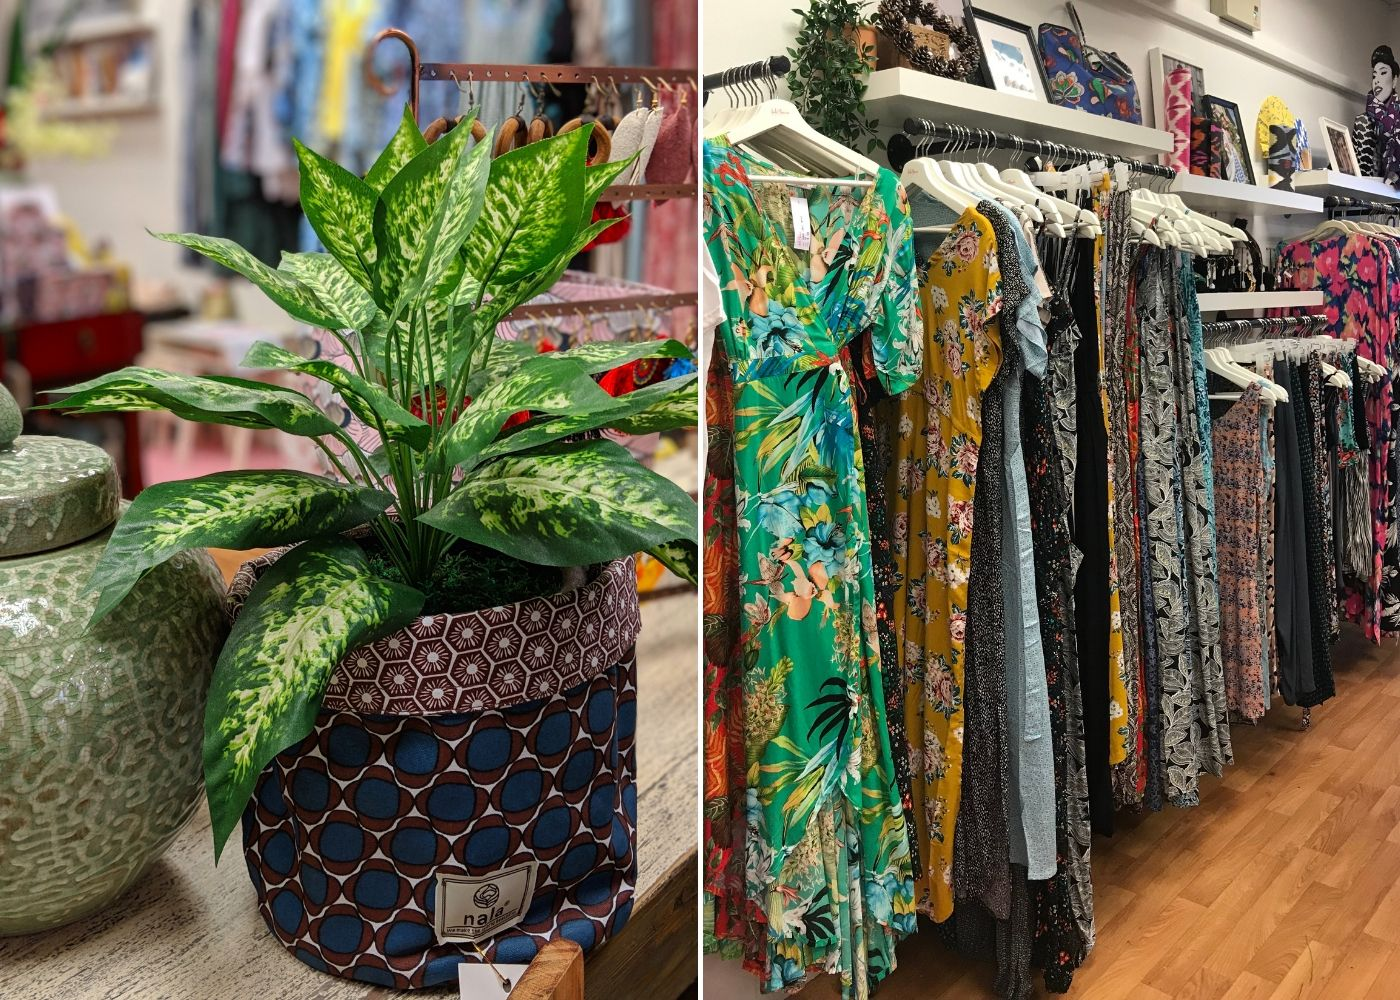 Patterned pot holder by Nala Designs and boho dresses by Indii Breeze at the WYLD Shop Joo Chiat | multi-label boutiques in Singapore